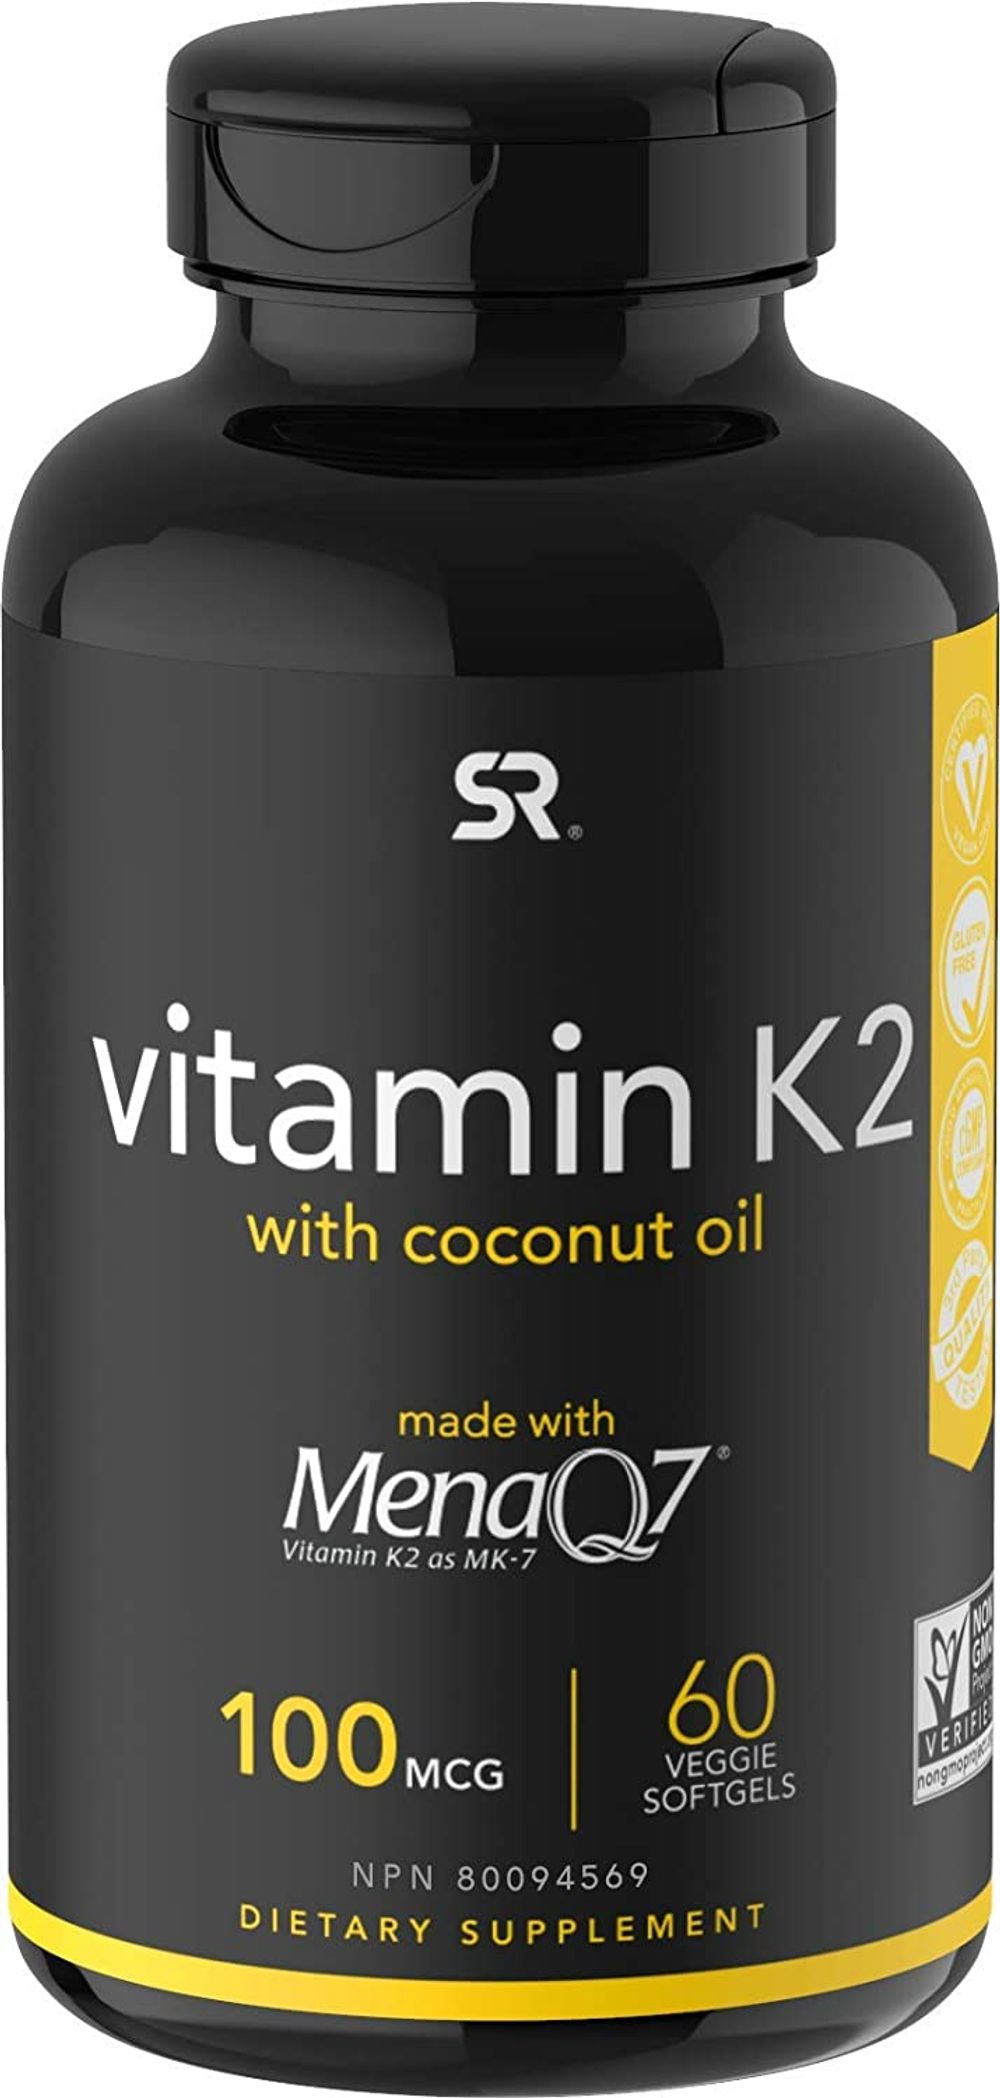 Vitamin K2 (as MK7) with Organic Coconut Oil | Made with MenaQ7 from Fermented Chickpea | Non-GMO Verified, Vegan Certified (60 Veggie-Softgels)